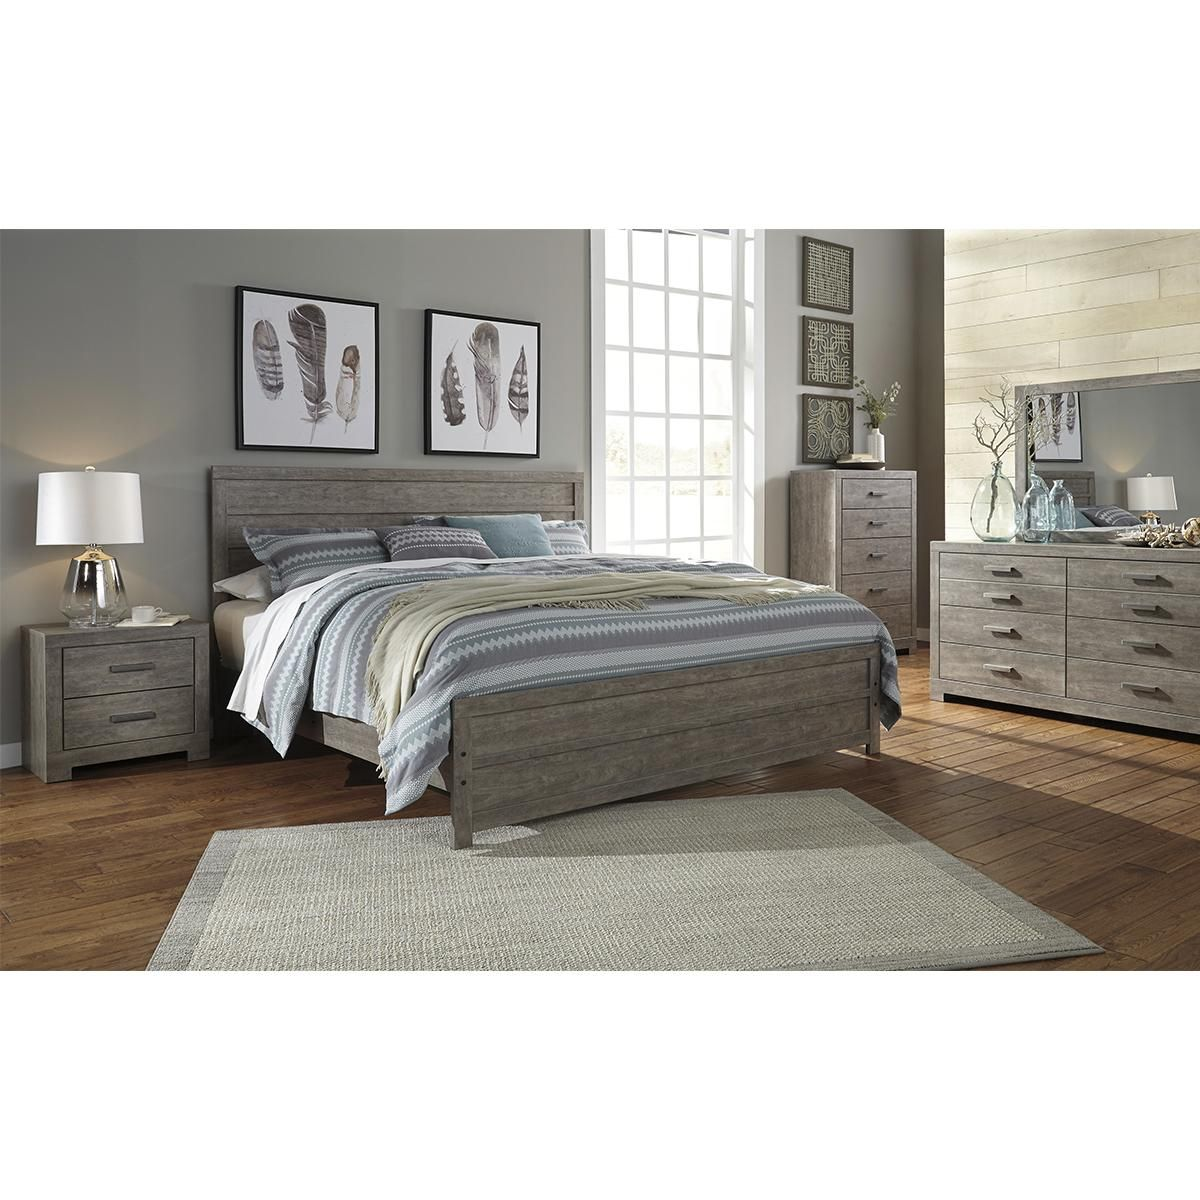 Best Signature Design By Ashley Culverbach 4 Piece Queen Bedroom Set In Driftwood Grey King Bedroom 400 x 300